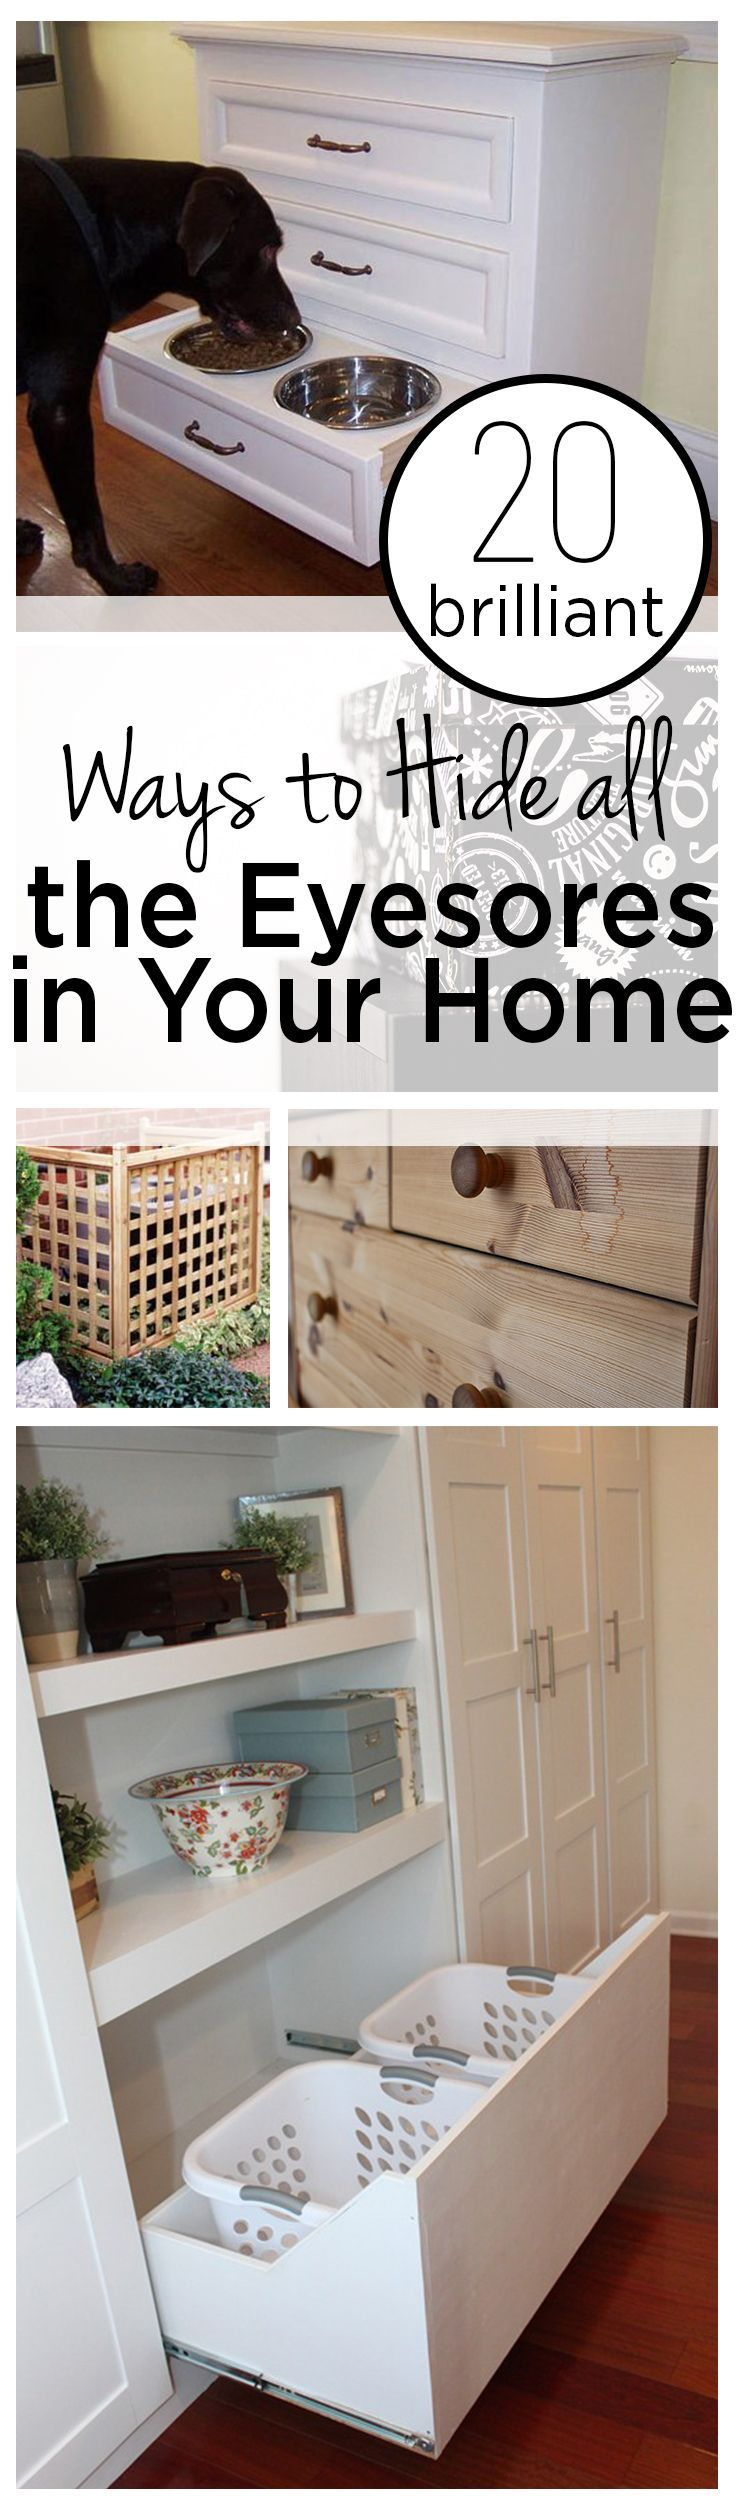 20 Brilliant Ways To Hide All The Eyesores In Your Home